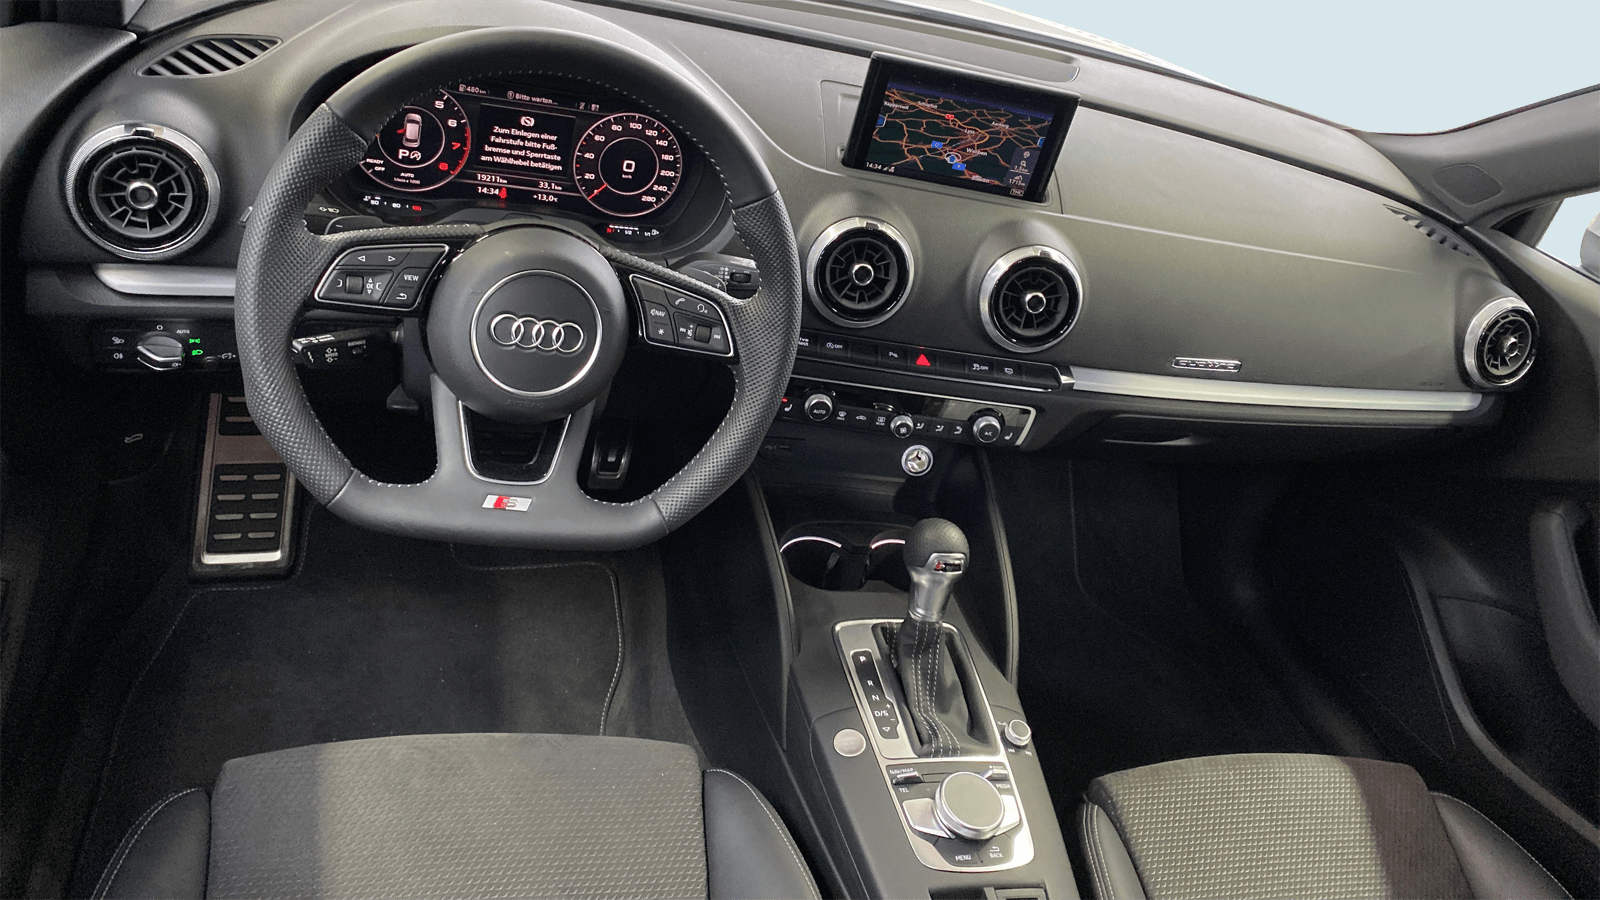 Audi A3 Sportback White interior - Clyde car subscription